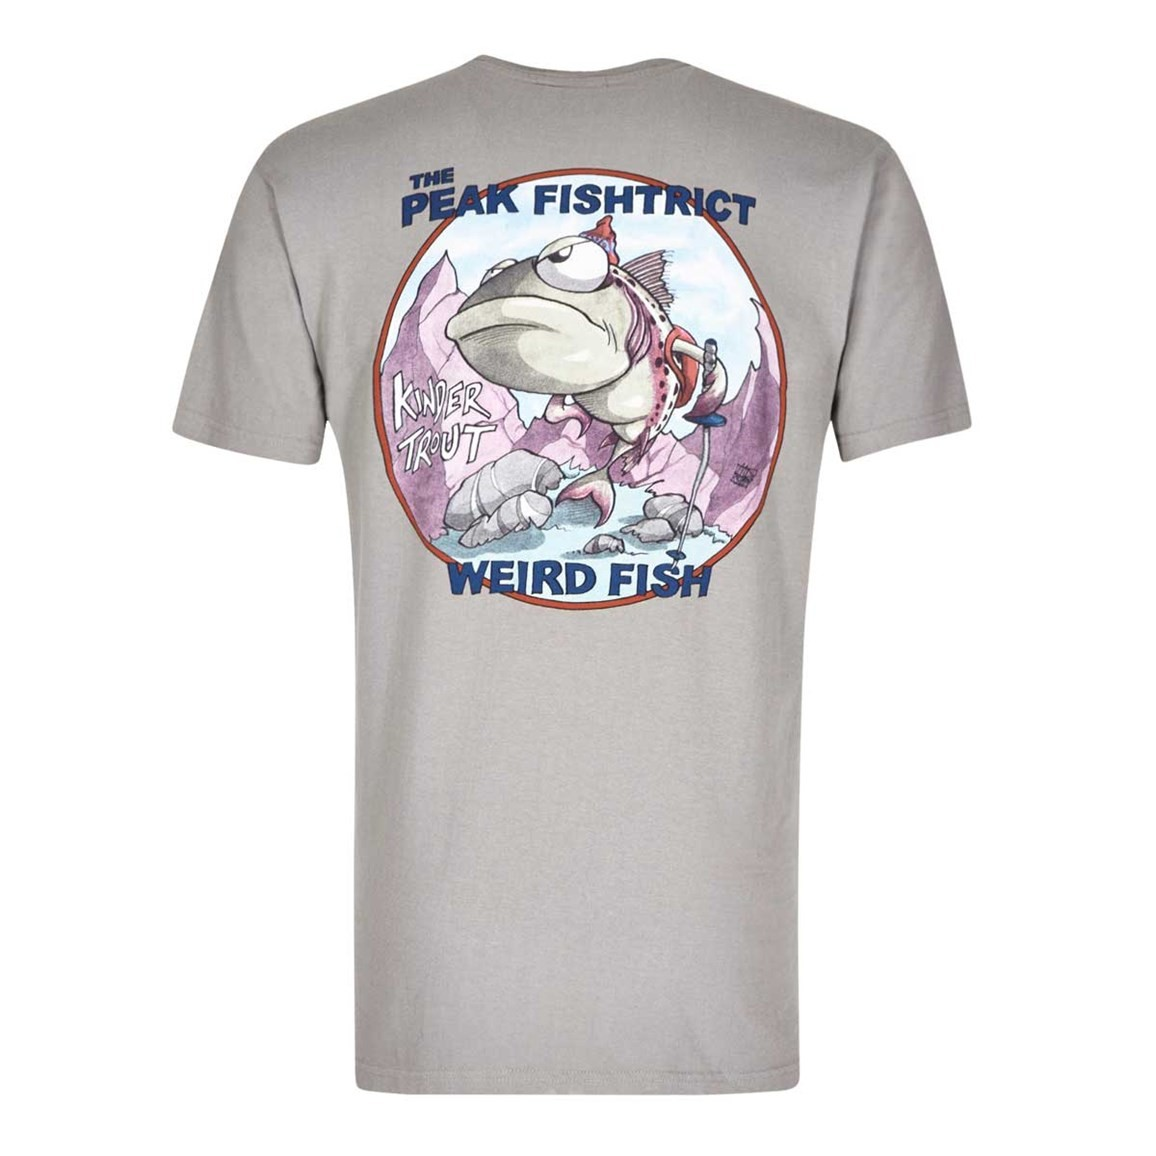 Peak Fishtrict Printed Artist T-Shirt Frost Grey